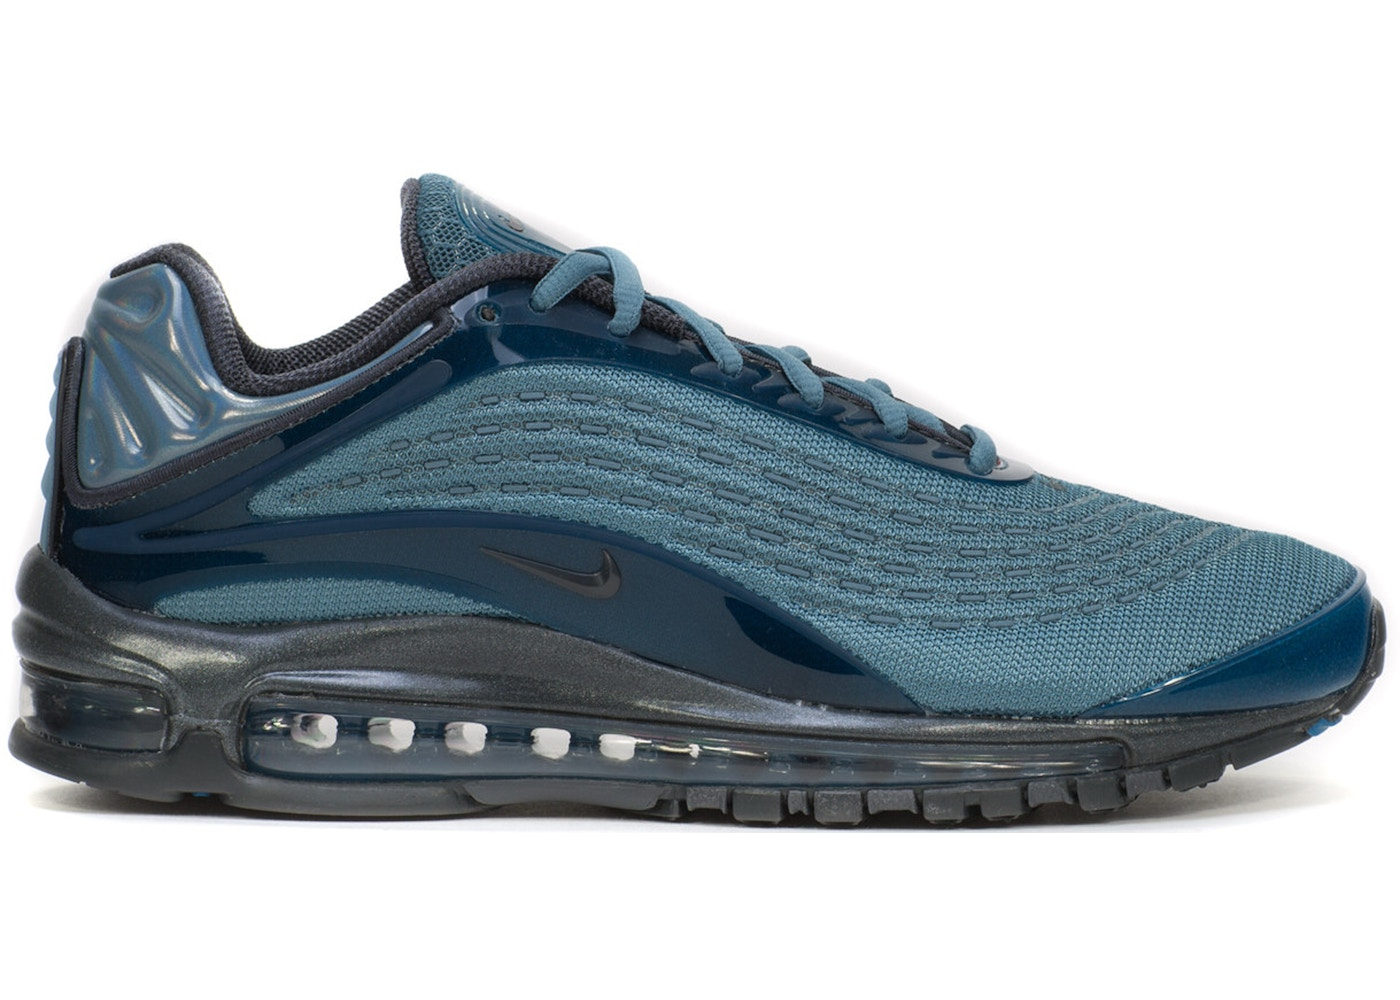 check out 3333b 1f2ad Air Max Deluxe Celestial Teal - AV7024-400